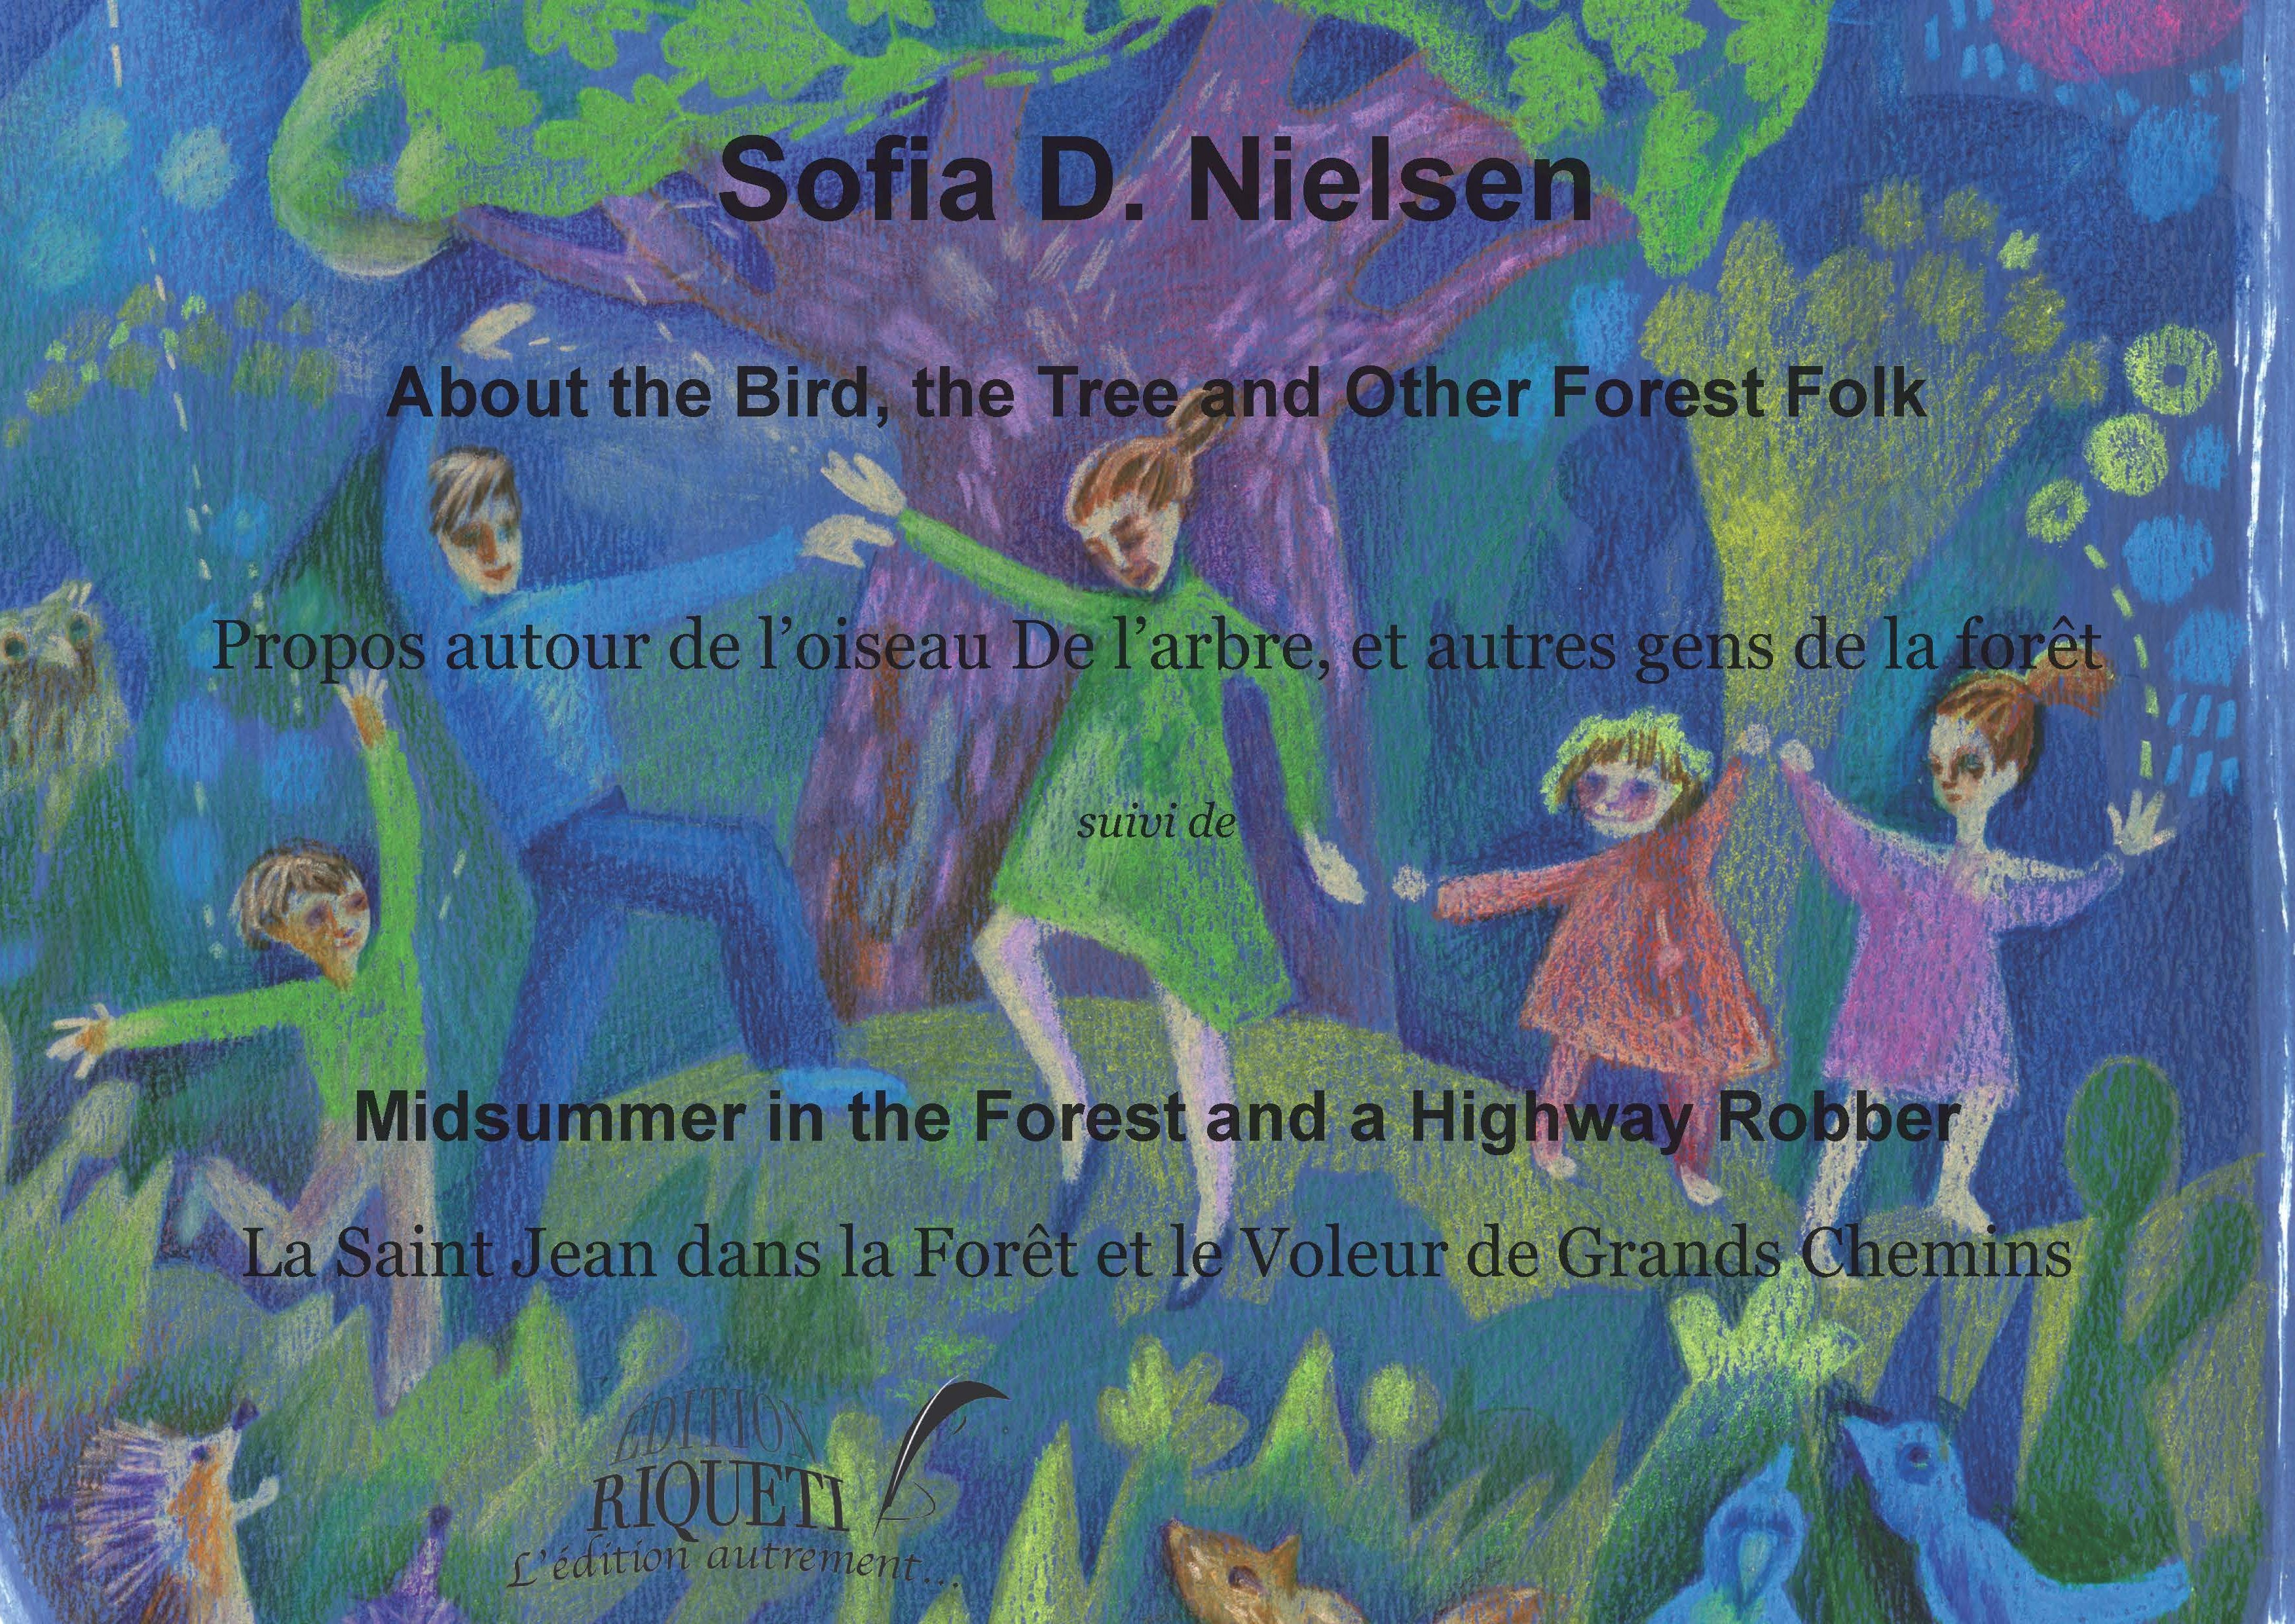 ABOUT THE BIRD, THE TREE AND OTHER FOREST FOLK